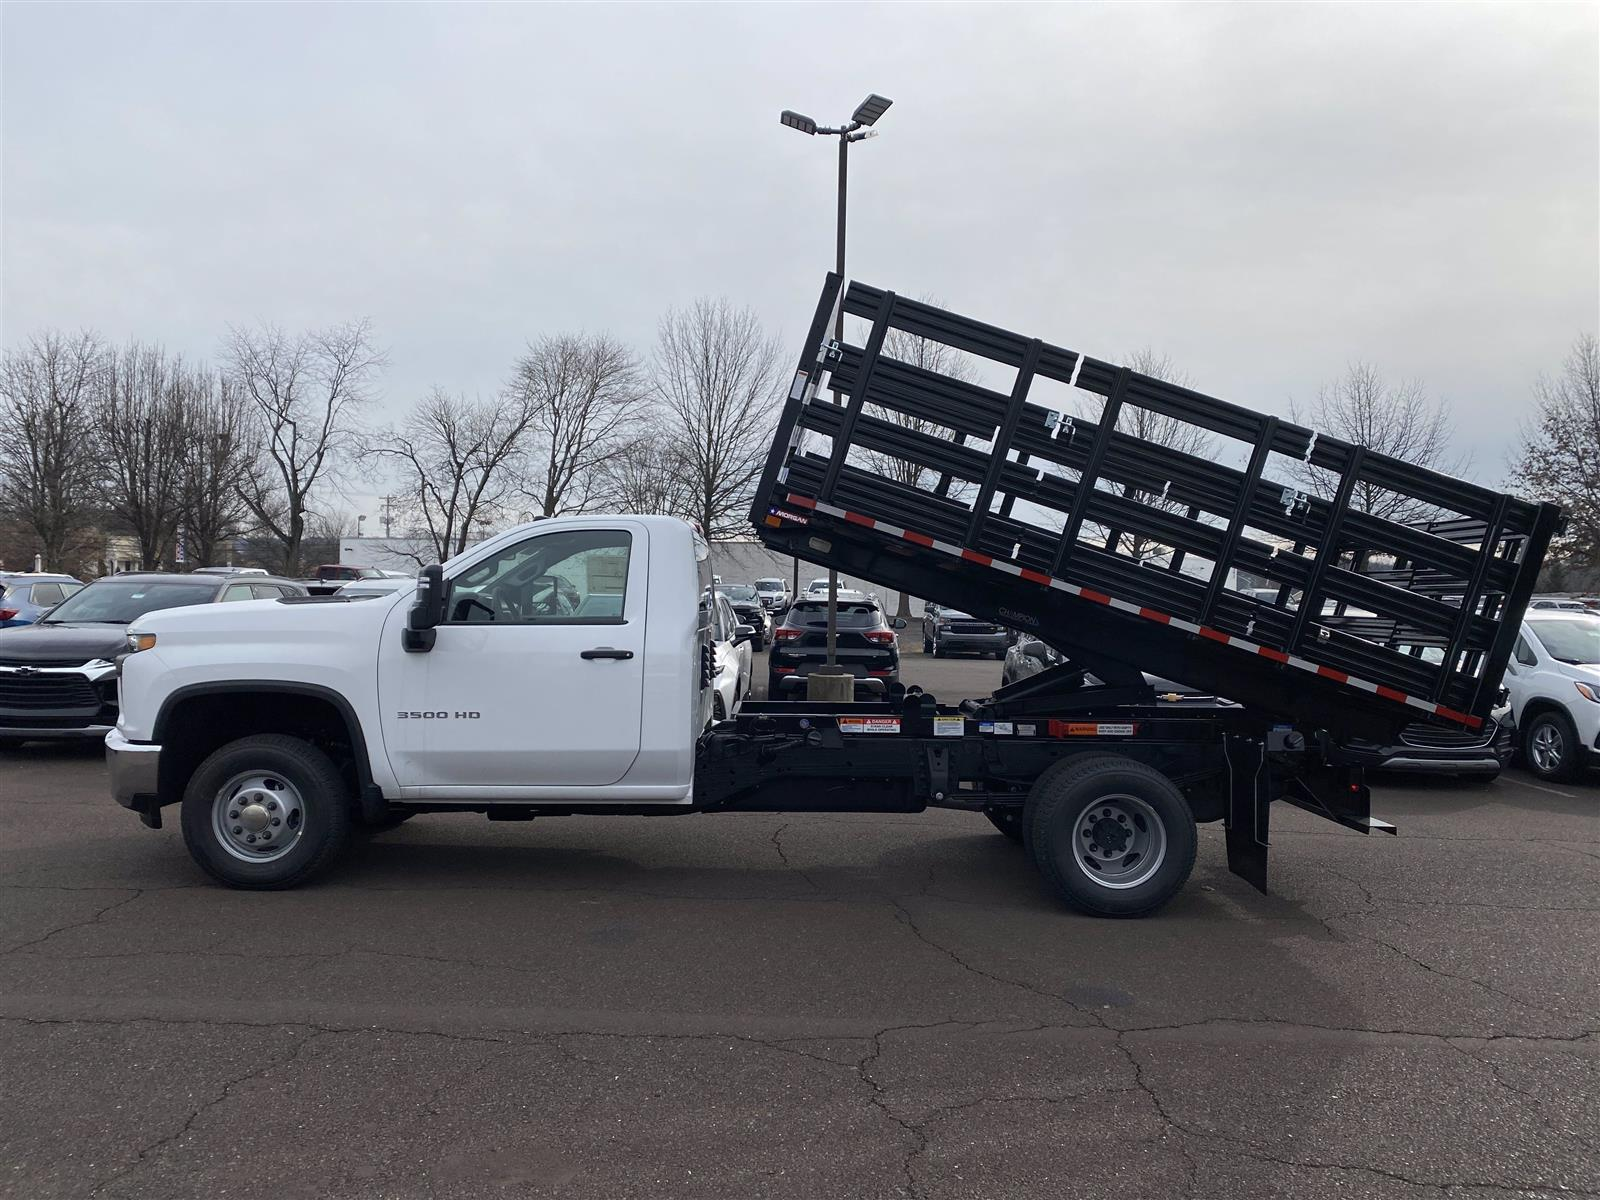 2020 Chevrolet Silverado 3500 Regular Cab DRW 4x4, Stake Bed #2029Q - photo 1